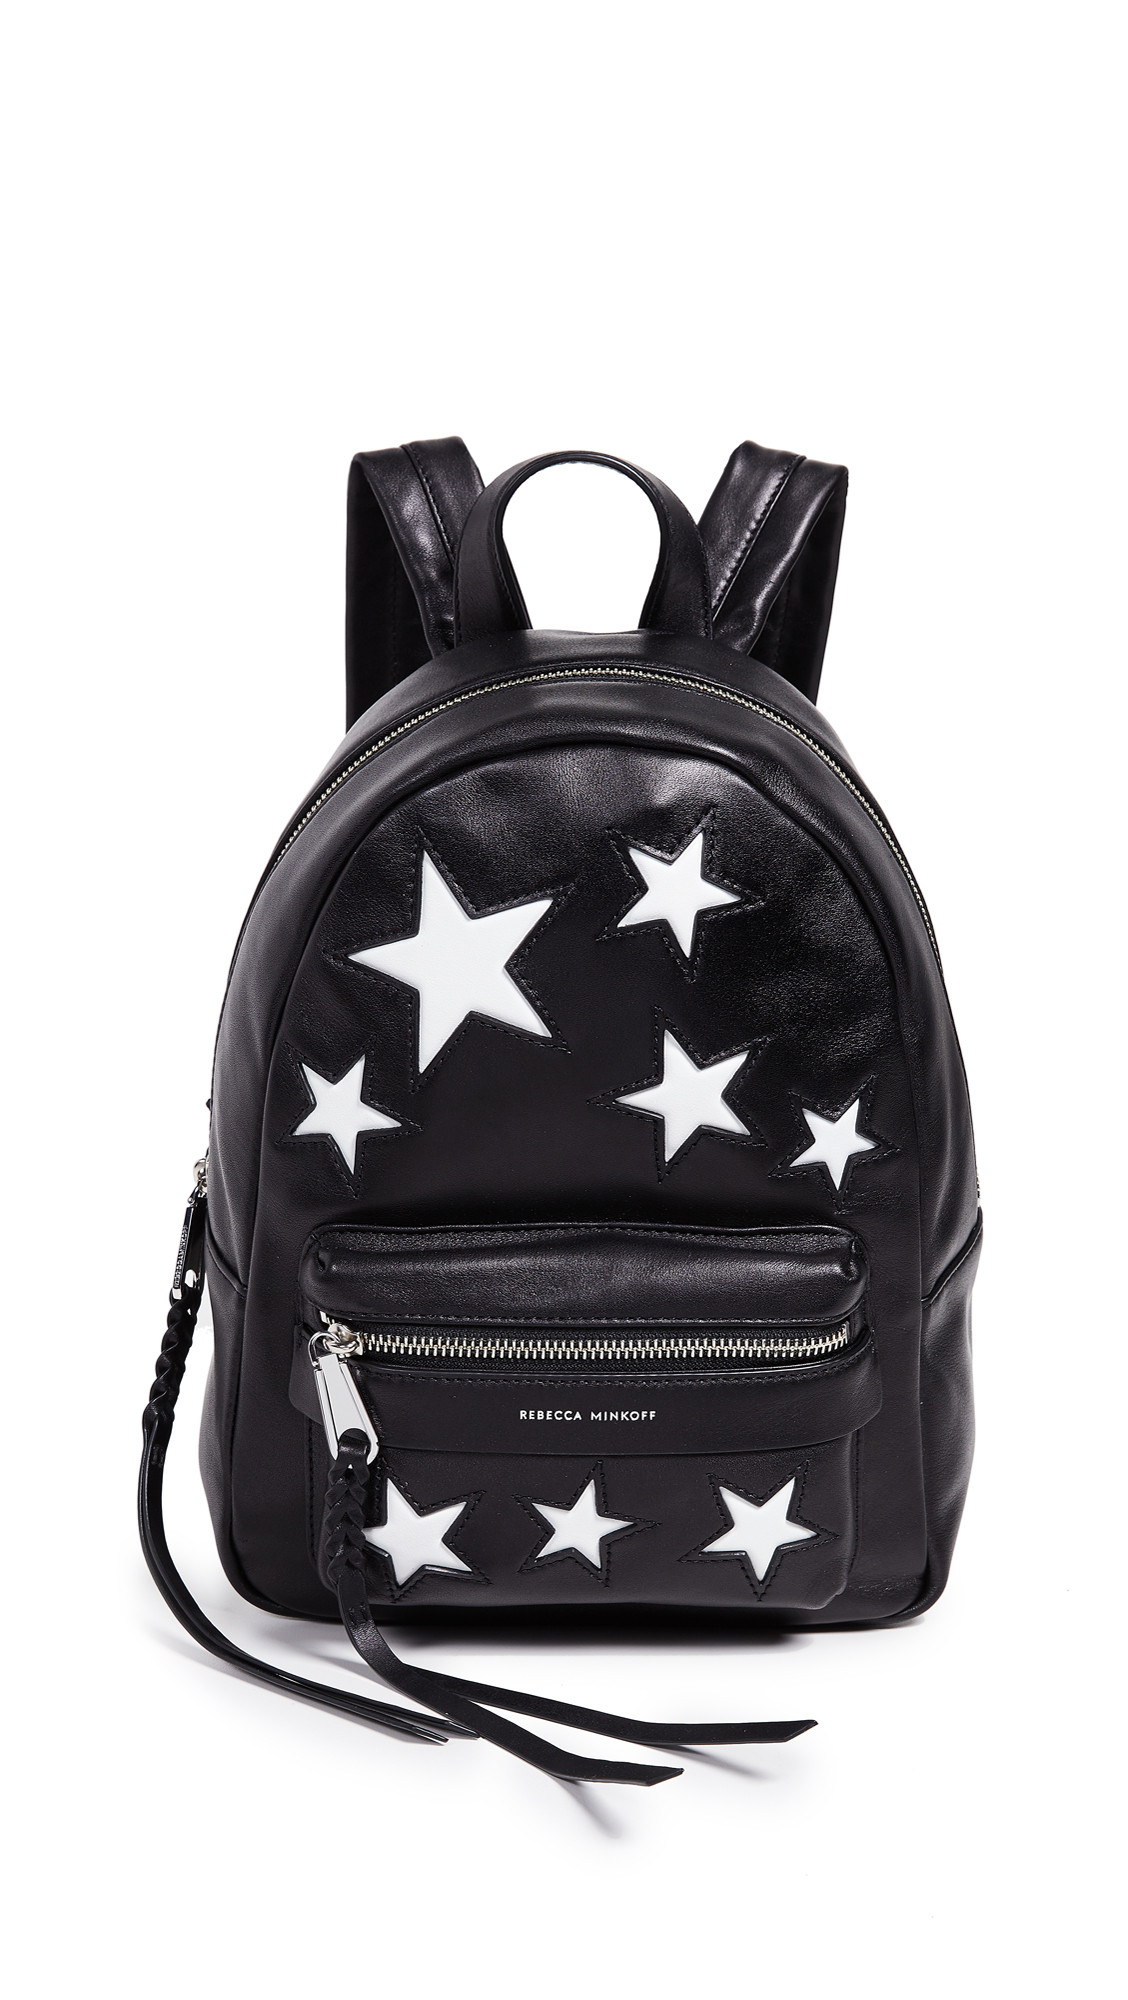 Multi Star Small Mab Backpack in Black